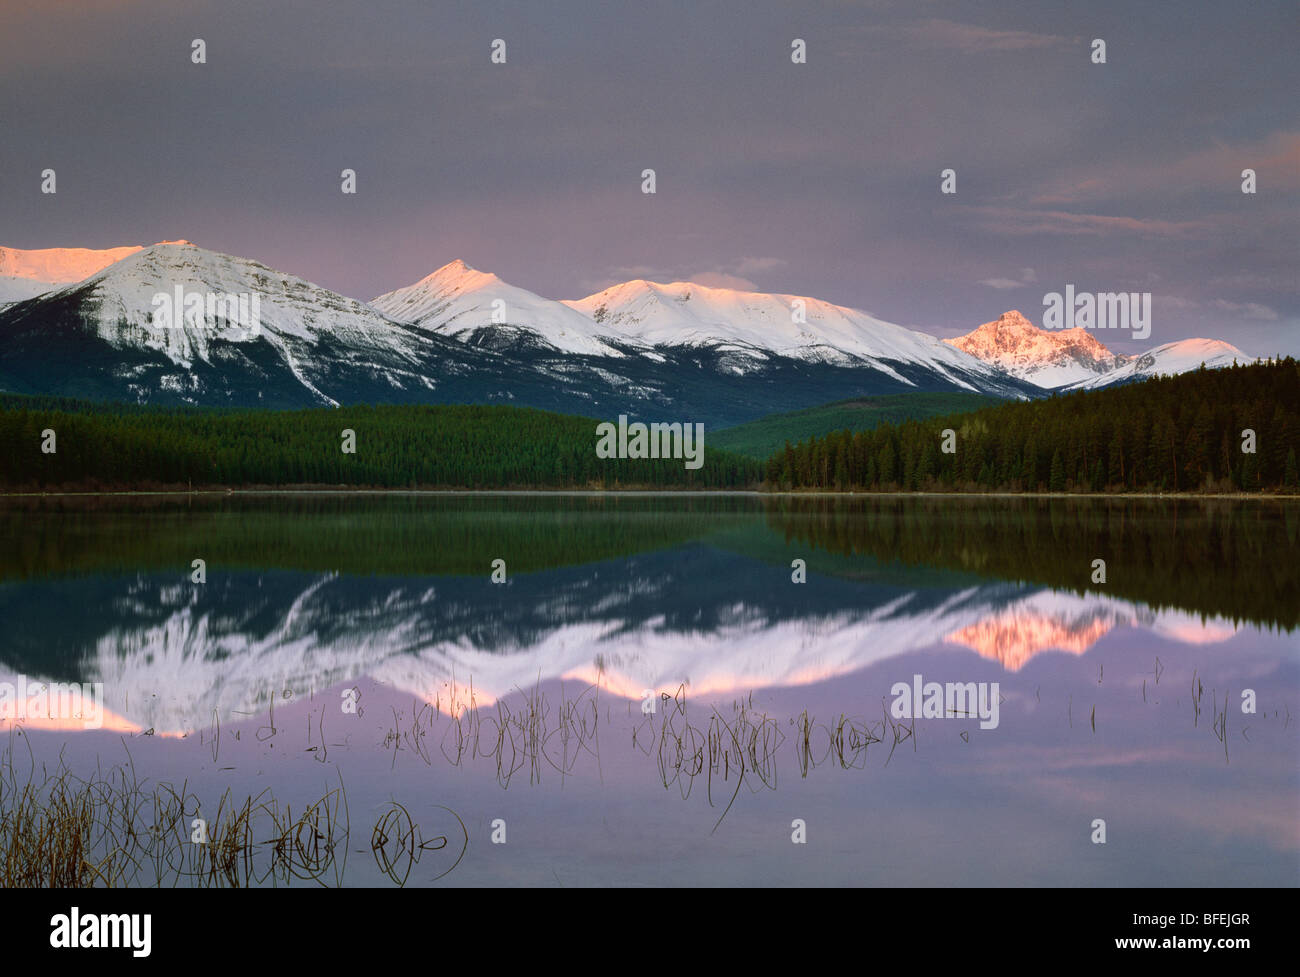 Patricia Lake and the Trident Range, Jasper National Park, Alberta, Canada - Stock Image